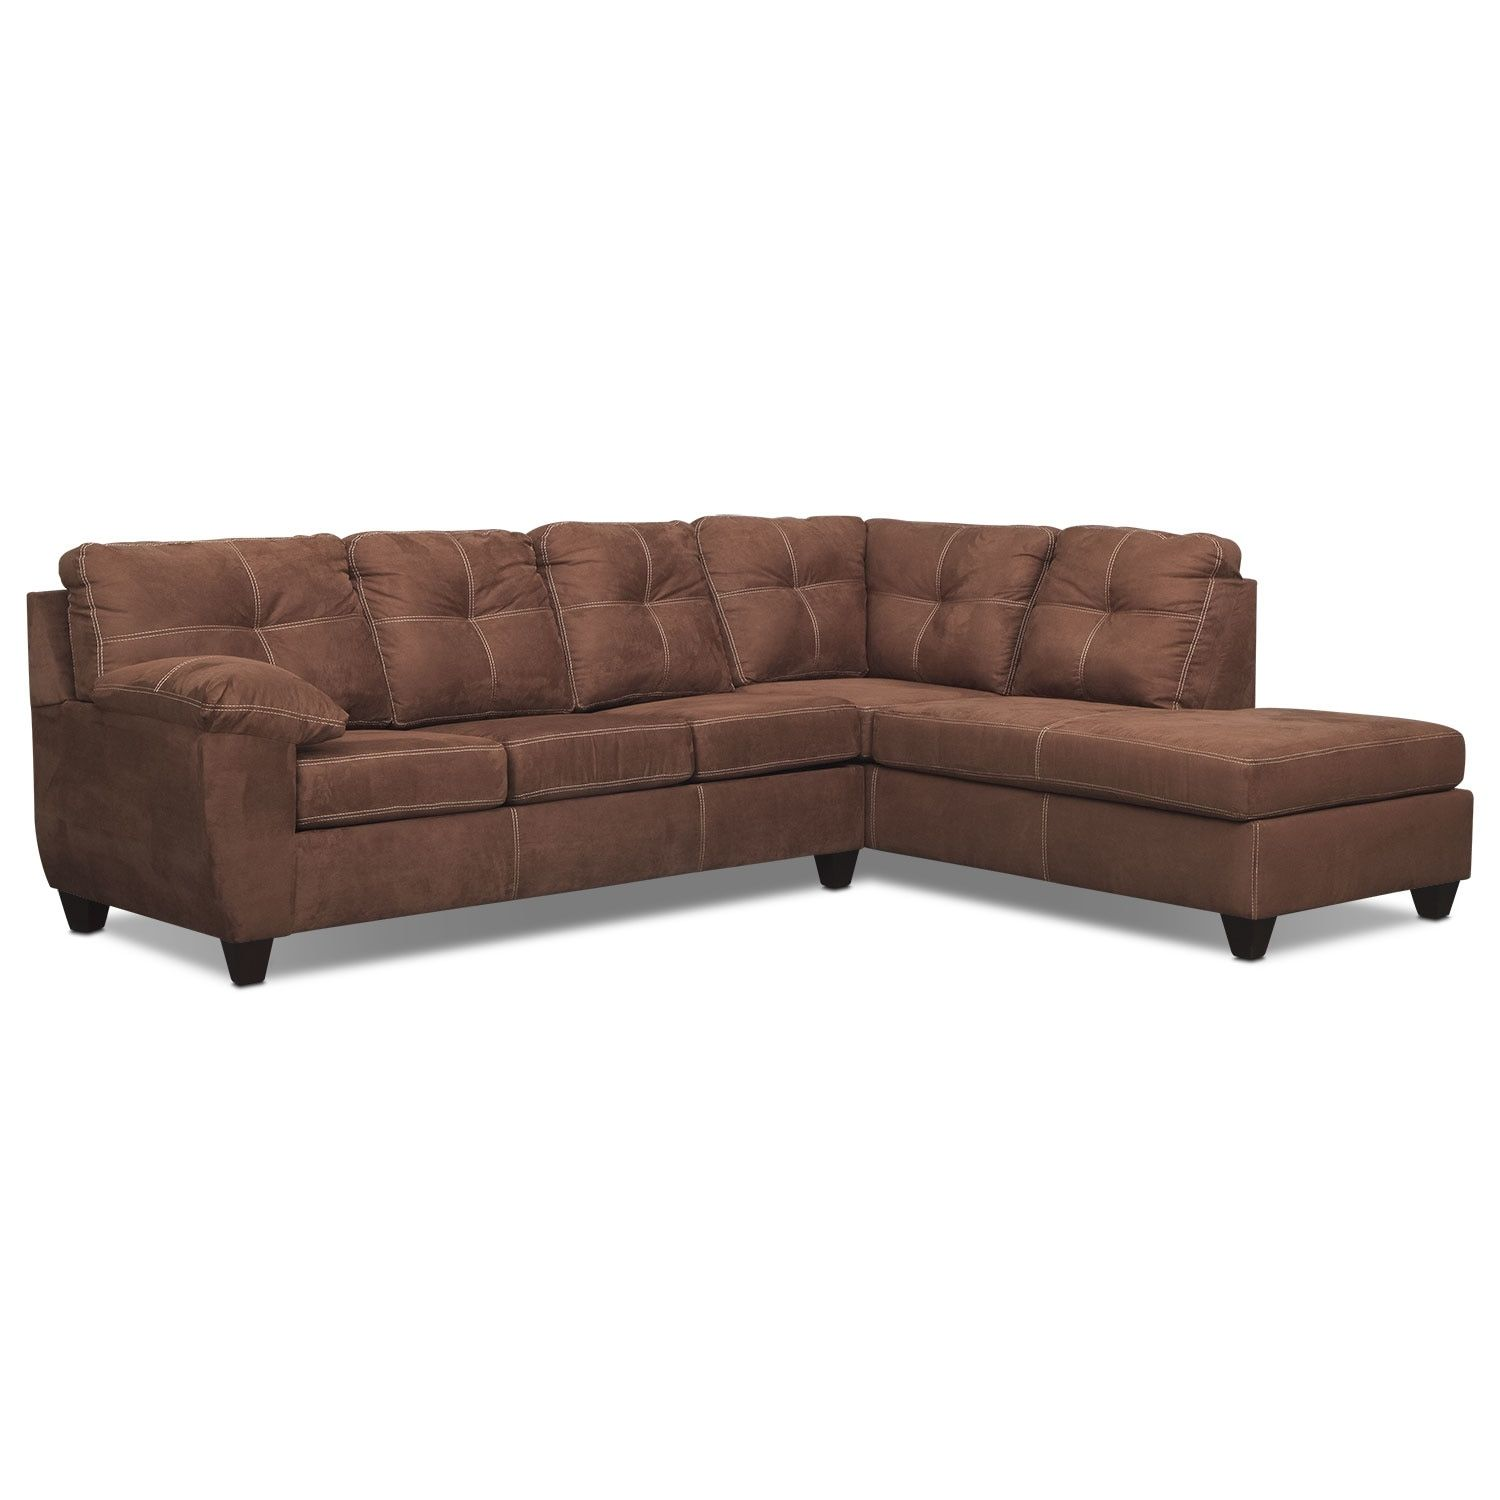 Superb Seth Genuine Leather Sofa  Rope   Part Of The Cindy Crawford Collection,  Enjoy Genuine Rope Coloured Leather Thanks To The Seth Sofa. In Addition Tu2026